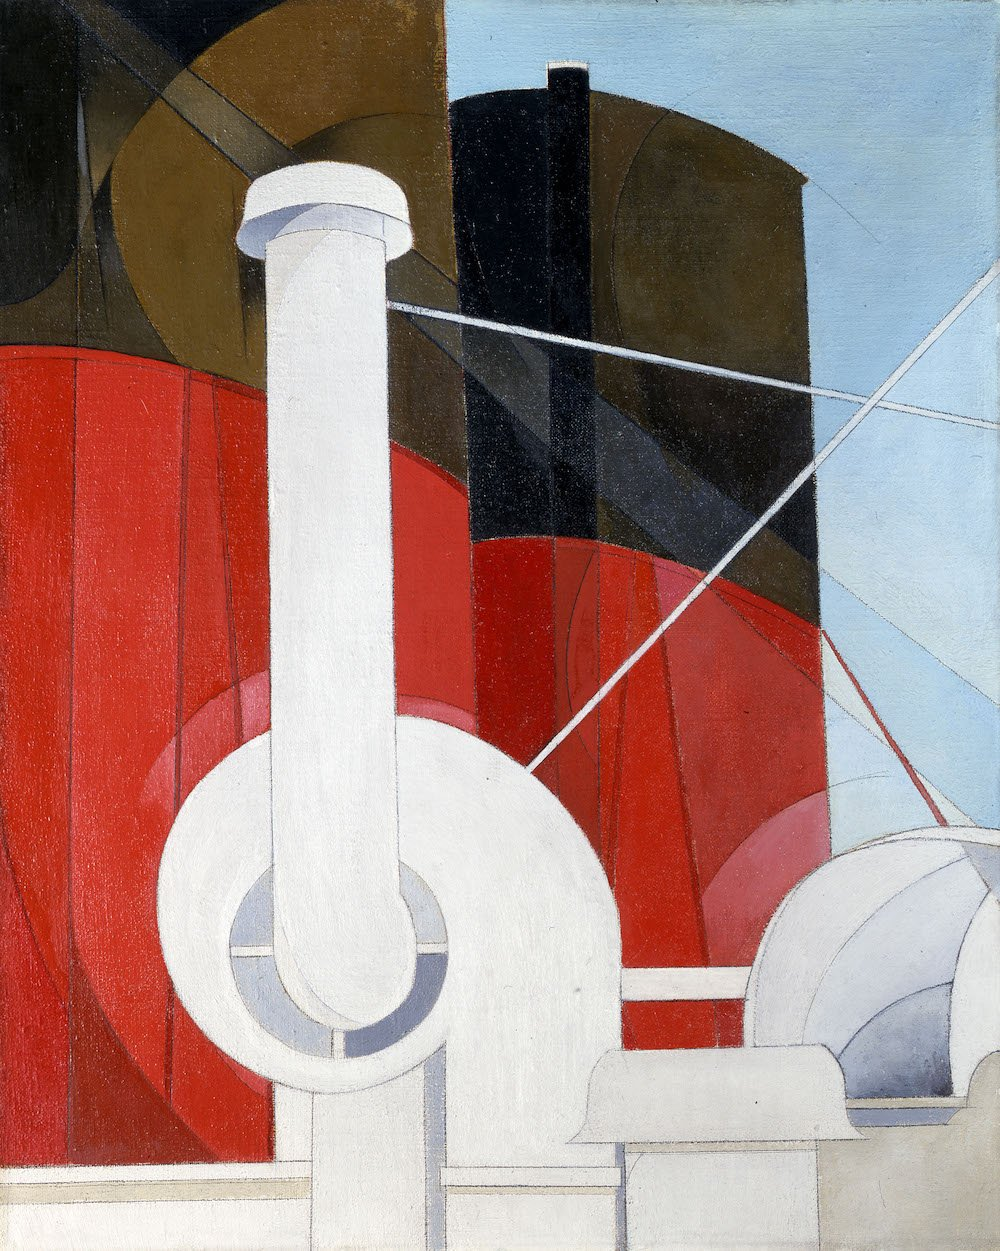 Paquebot 'Paris', Charles Demuth, 1921 – 22, US. Gift of Ferdinand Howald. © Columbus Museum of Art, Ohio